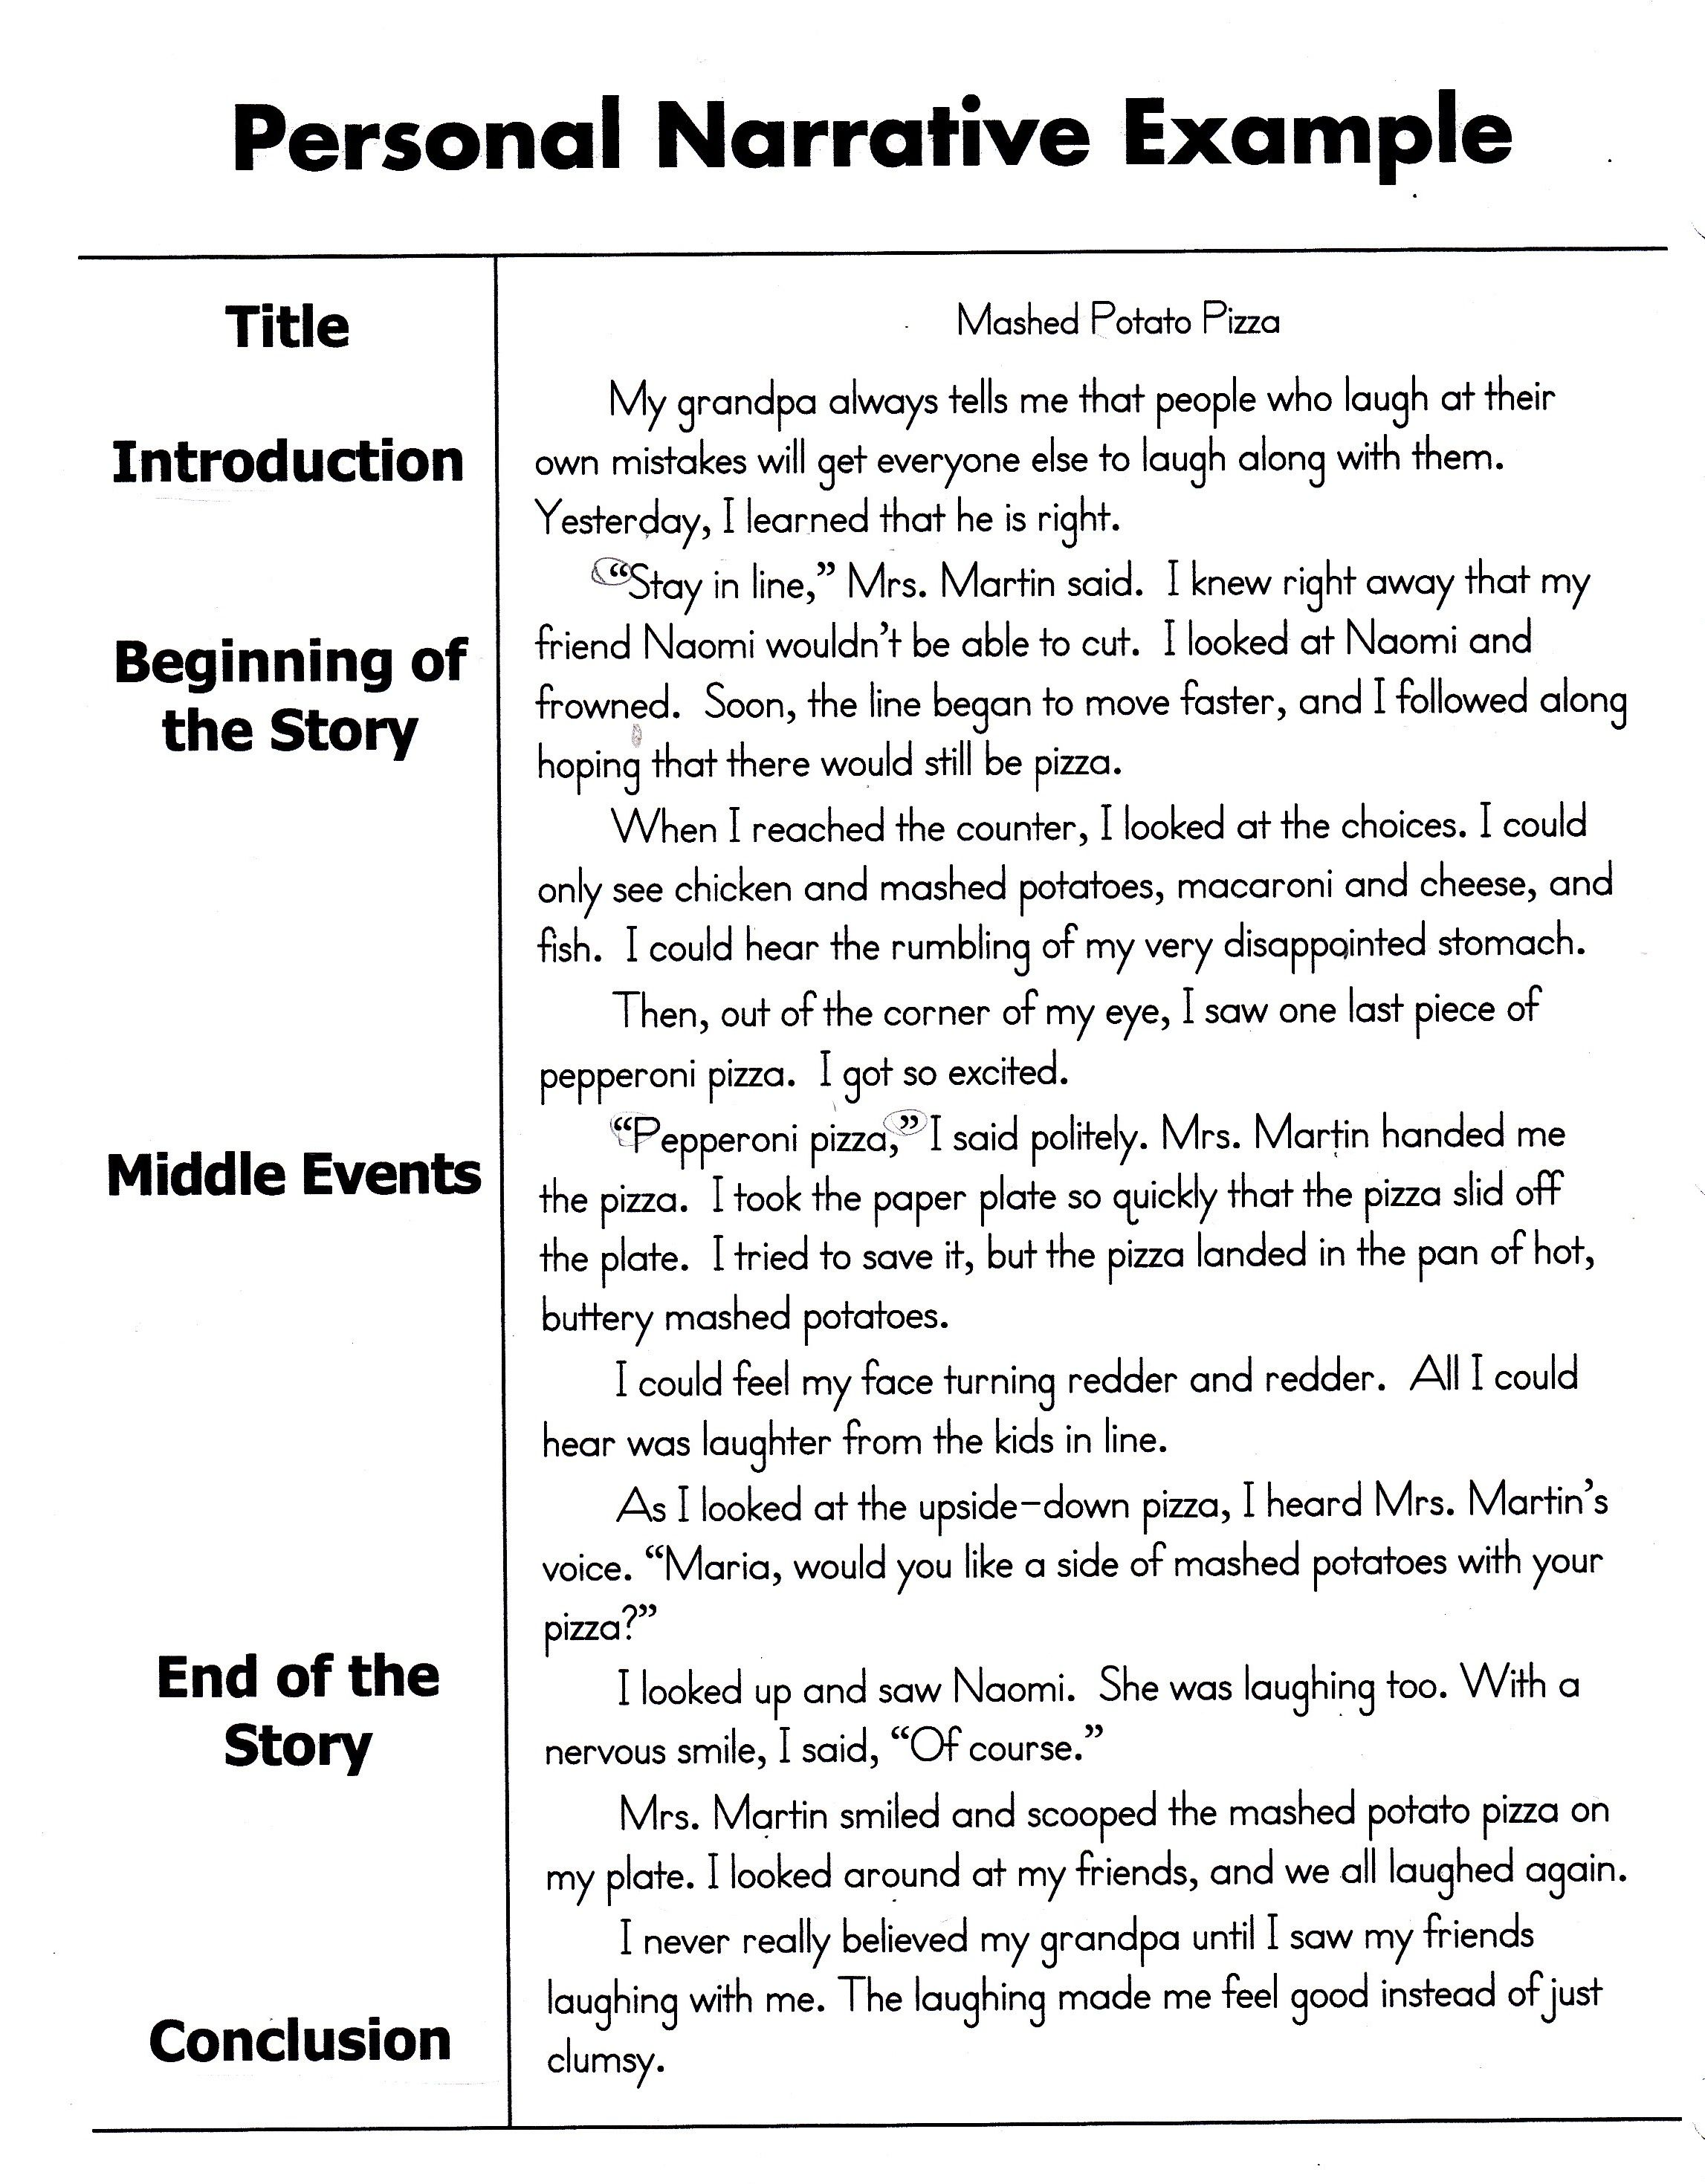 001 Personal Narrative Essay Topics Excellent For Middle School High Students Full